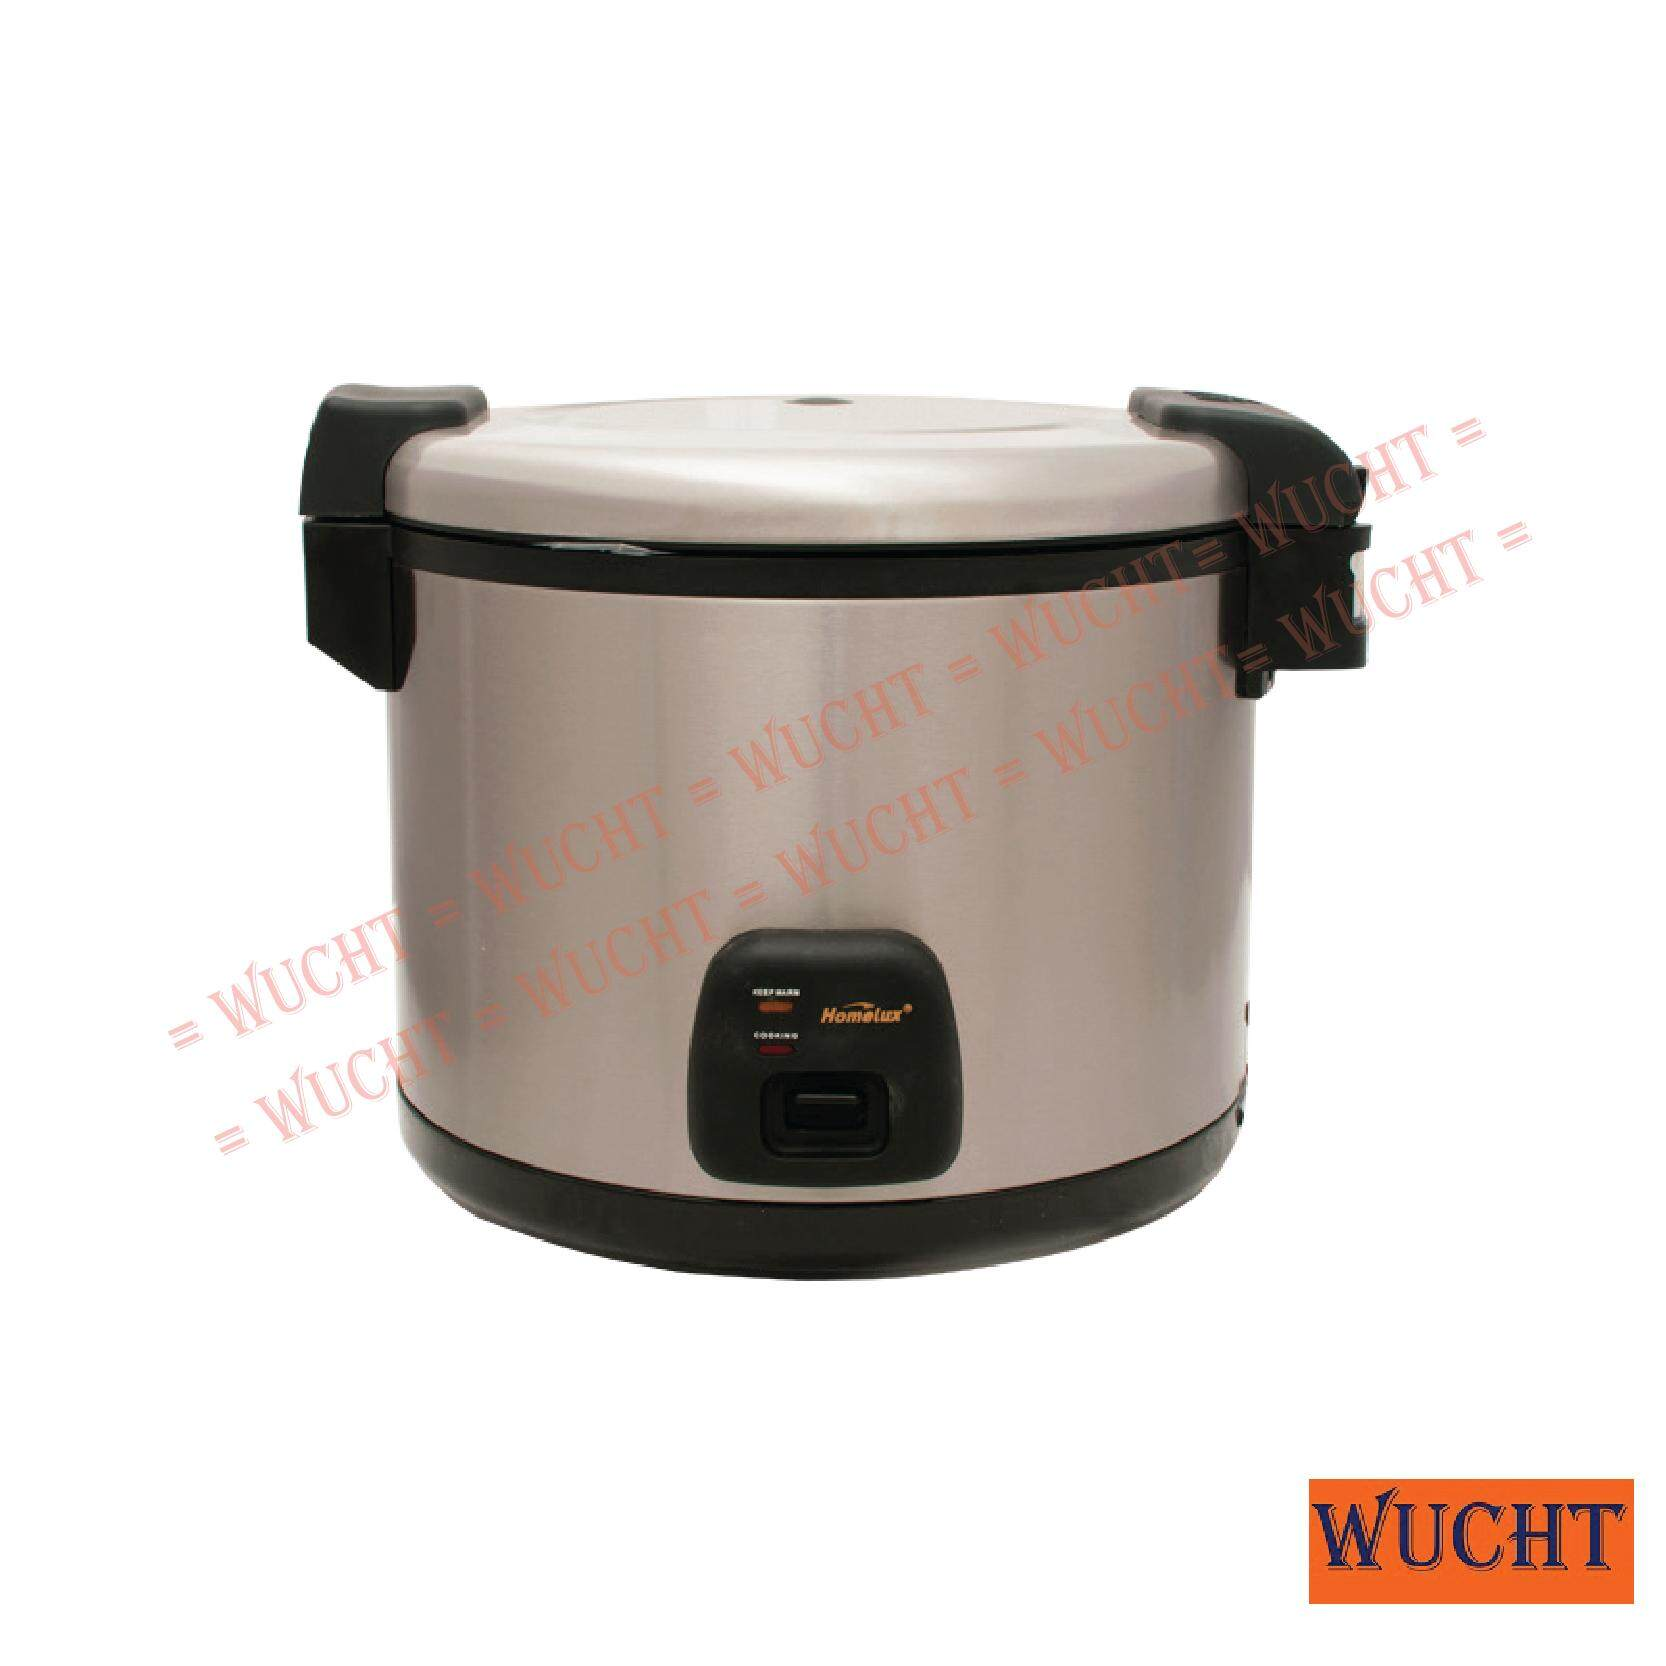 Homelux Commercial Electric Rice Cooker With Warmer With Hinged Cover - 30 Cups By Wucht.